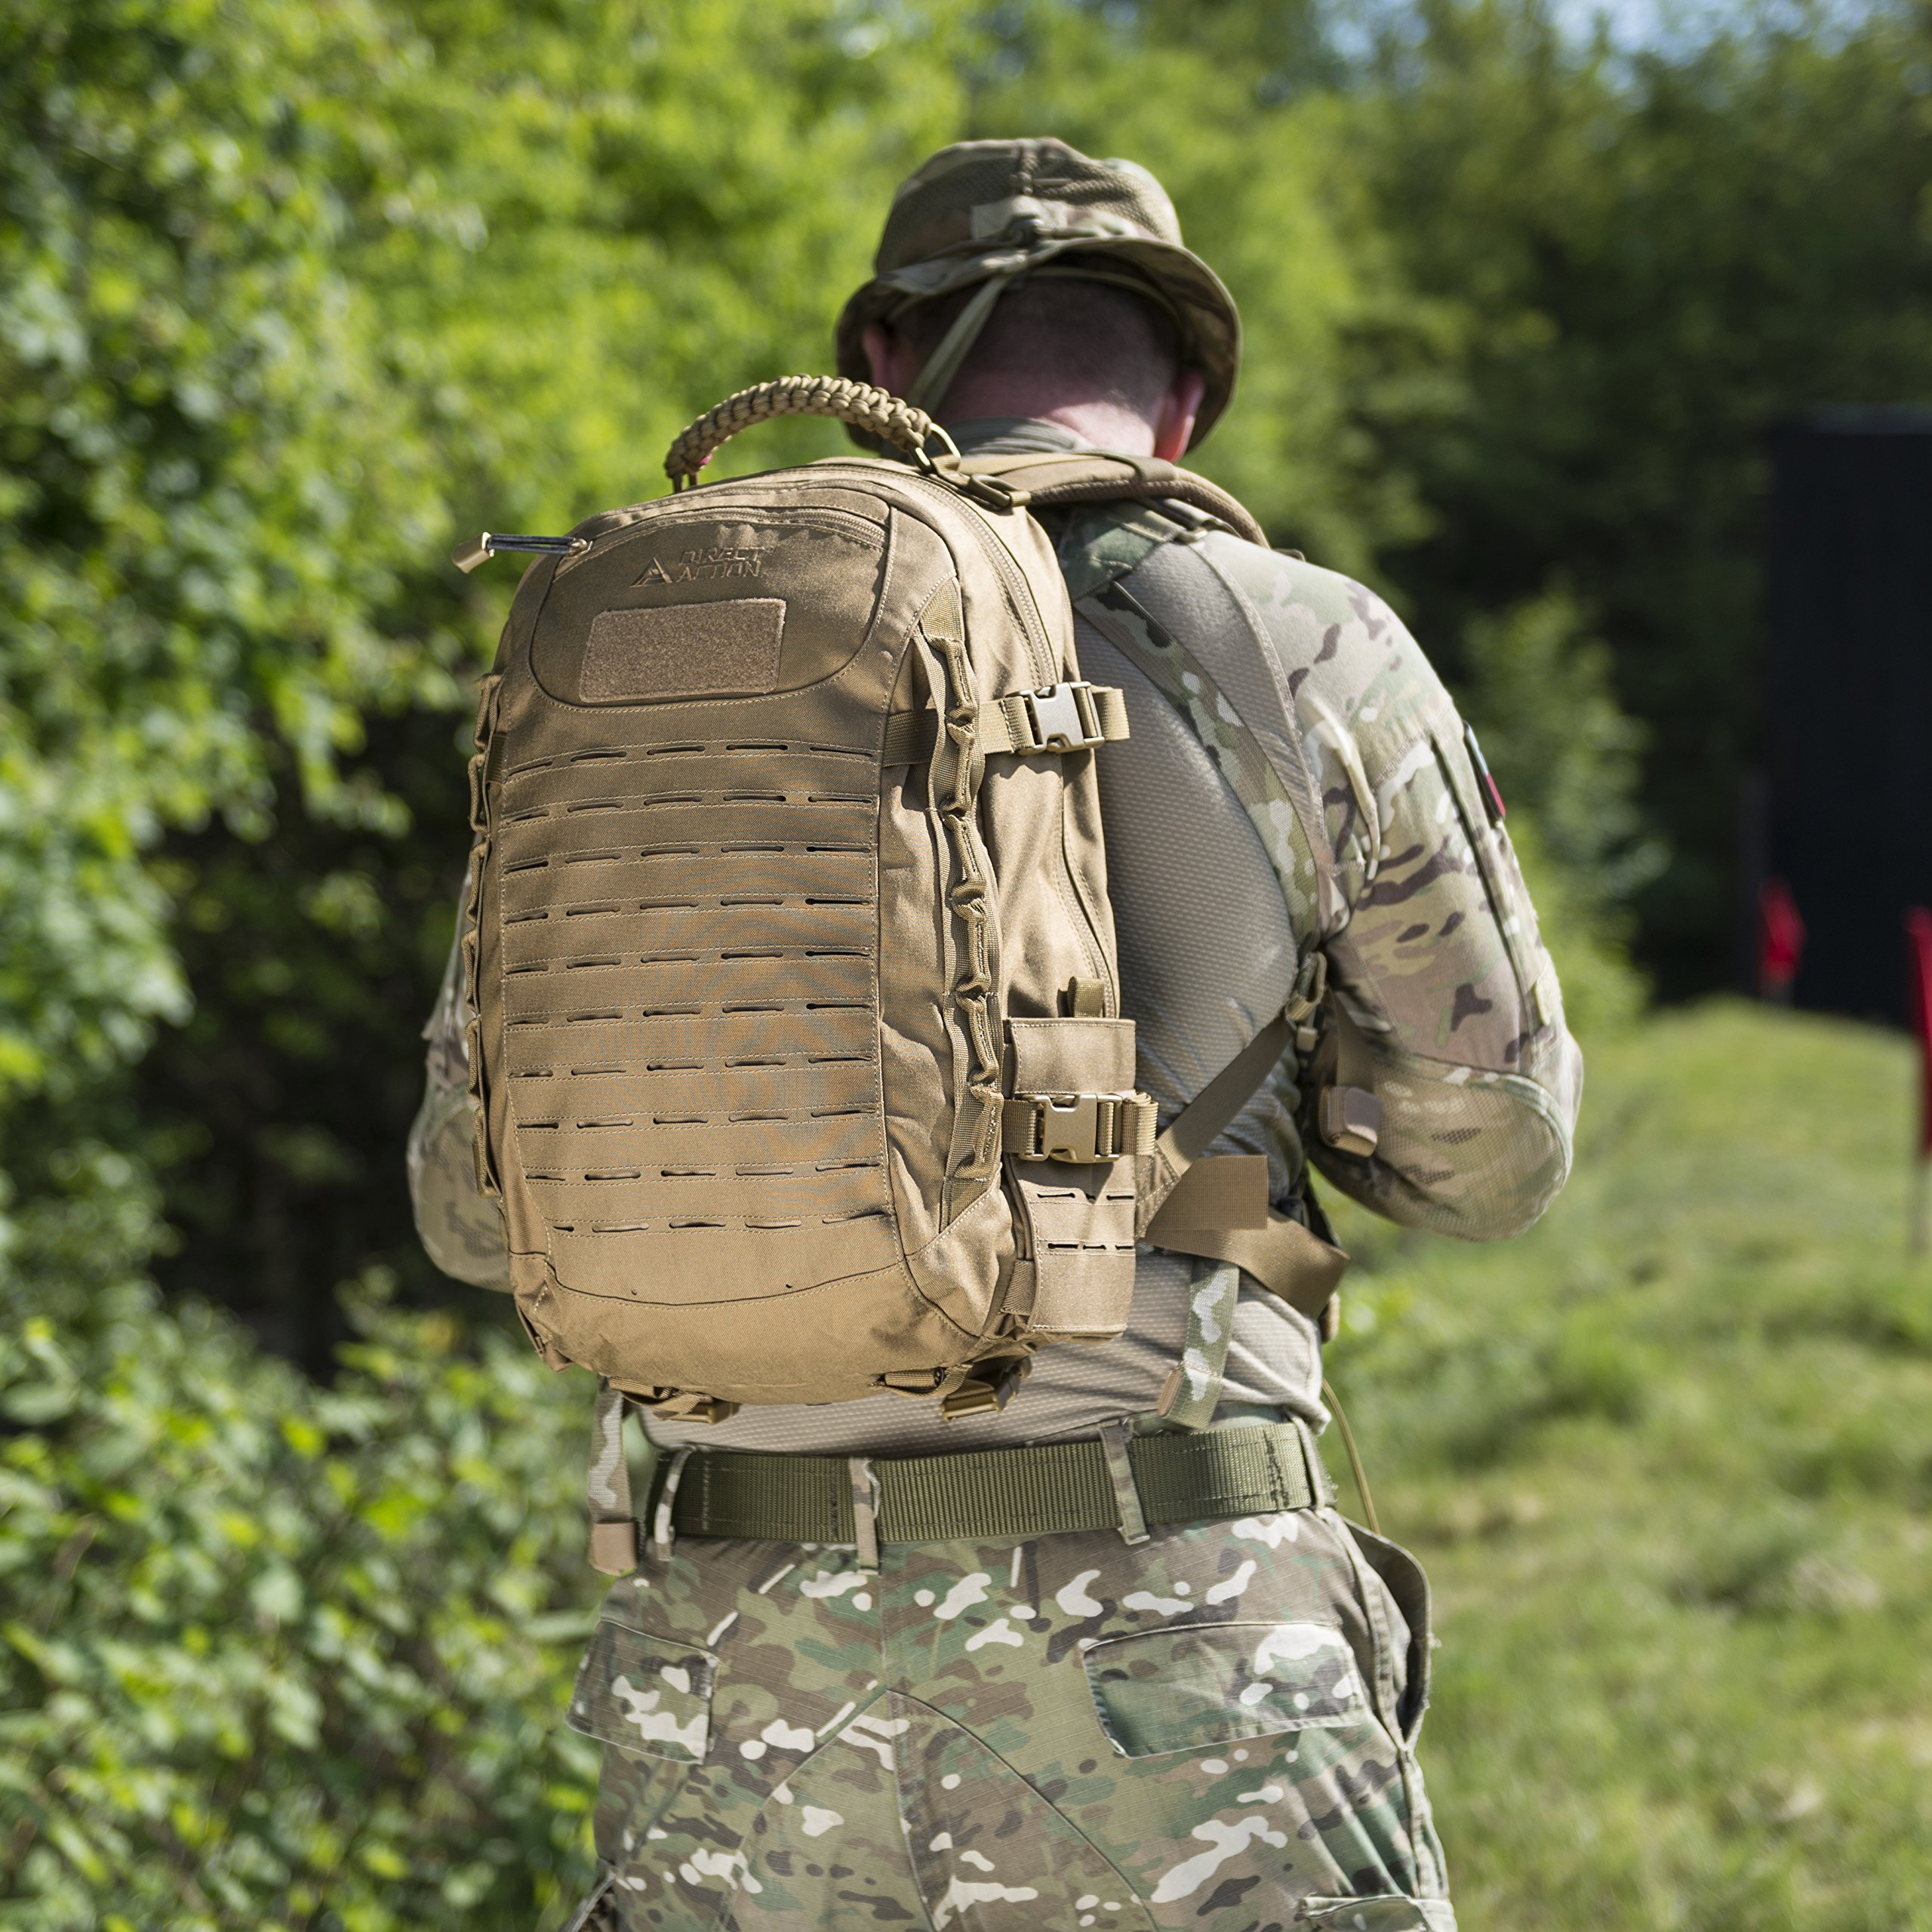 Direct Action Dragon Egg Tactical Backpack Reviews